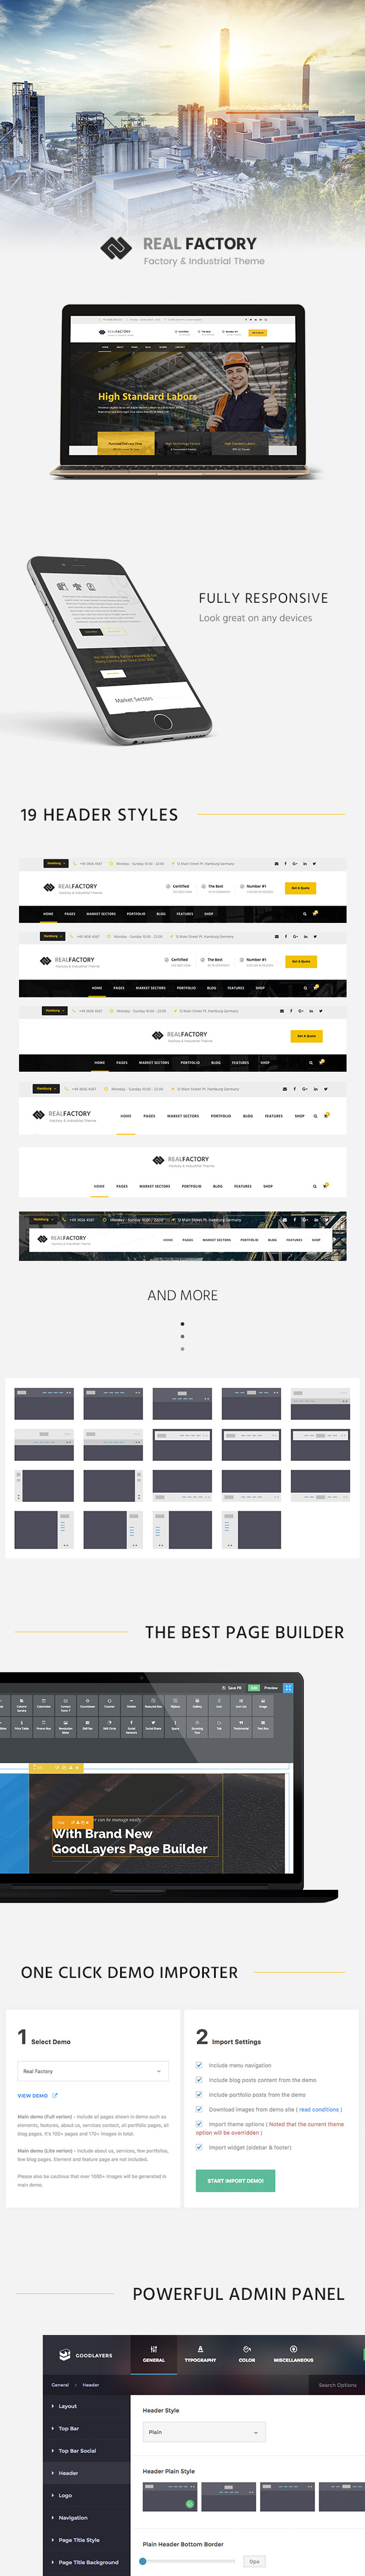 Construction WordPress Theme For Construction & Industrial Company | Real Factory - 1